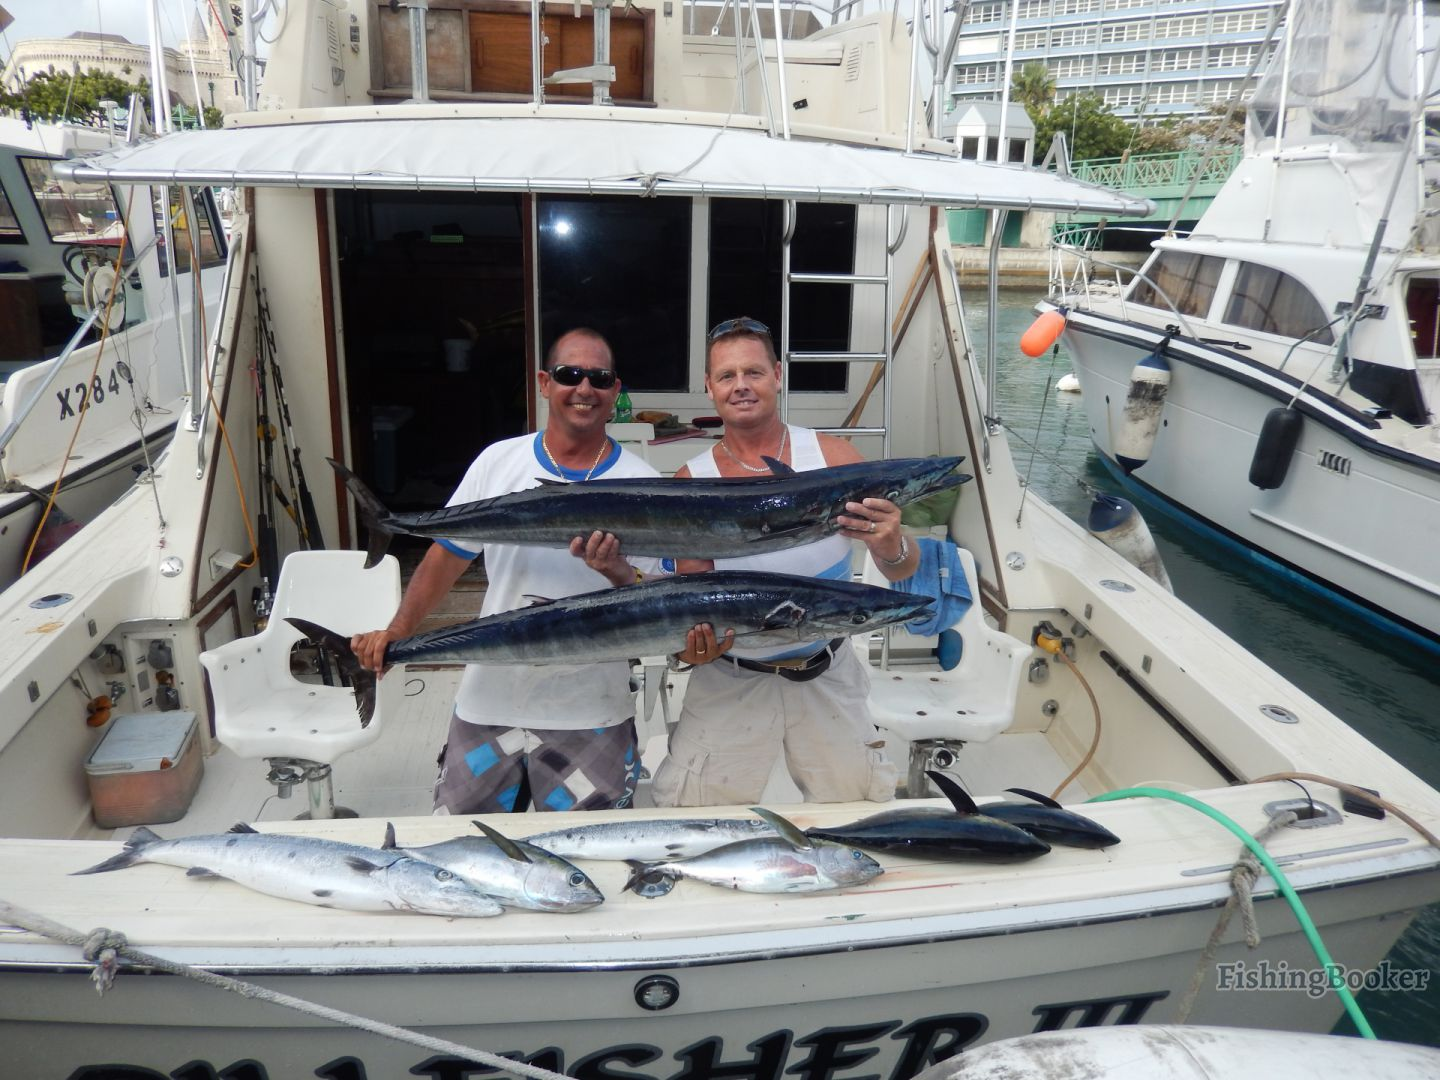 Two smiling anglers on a fishing boat, each holding a Wahoo in their hands, with several other fish in front of them